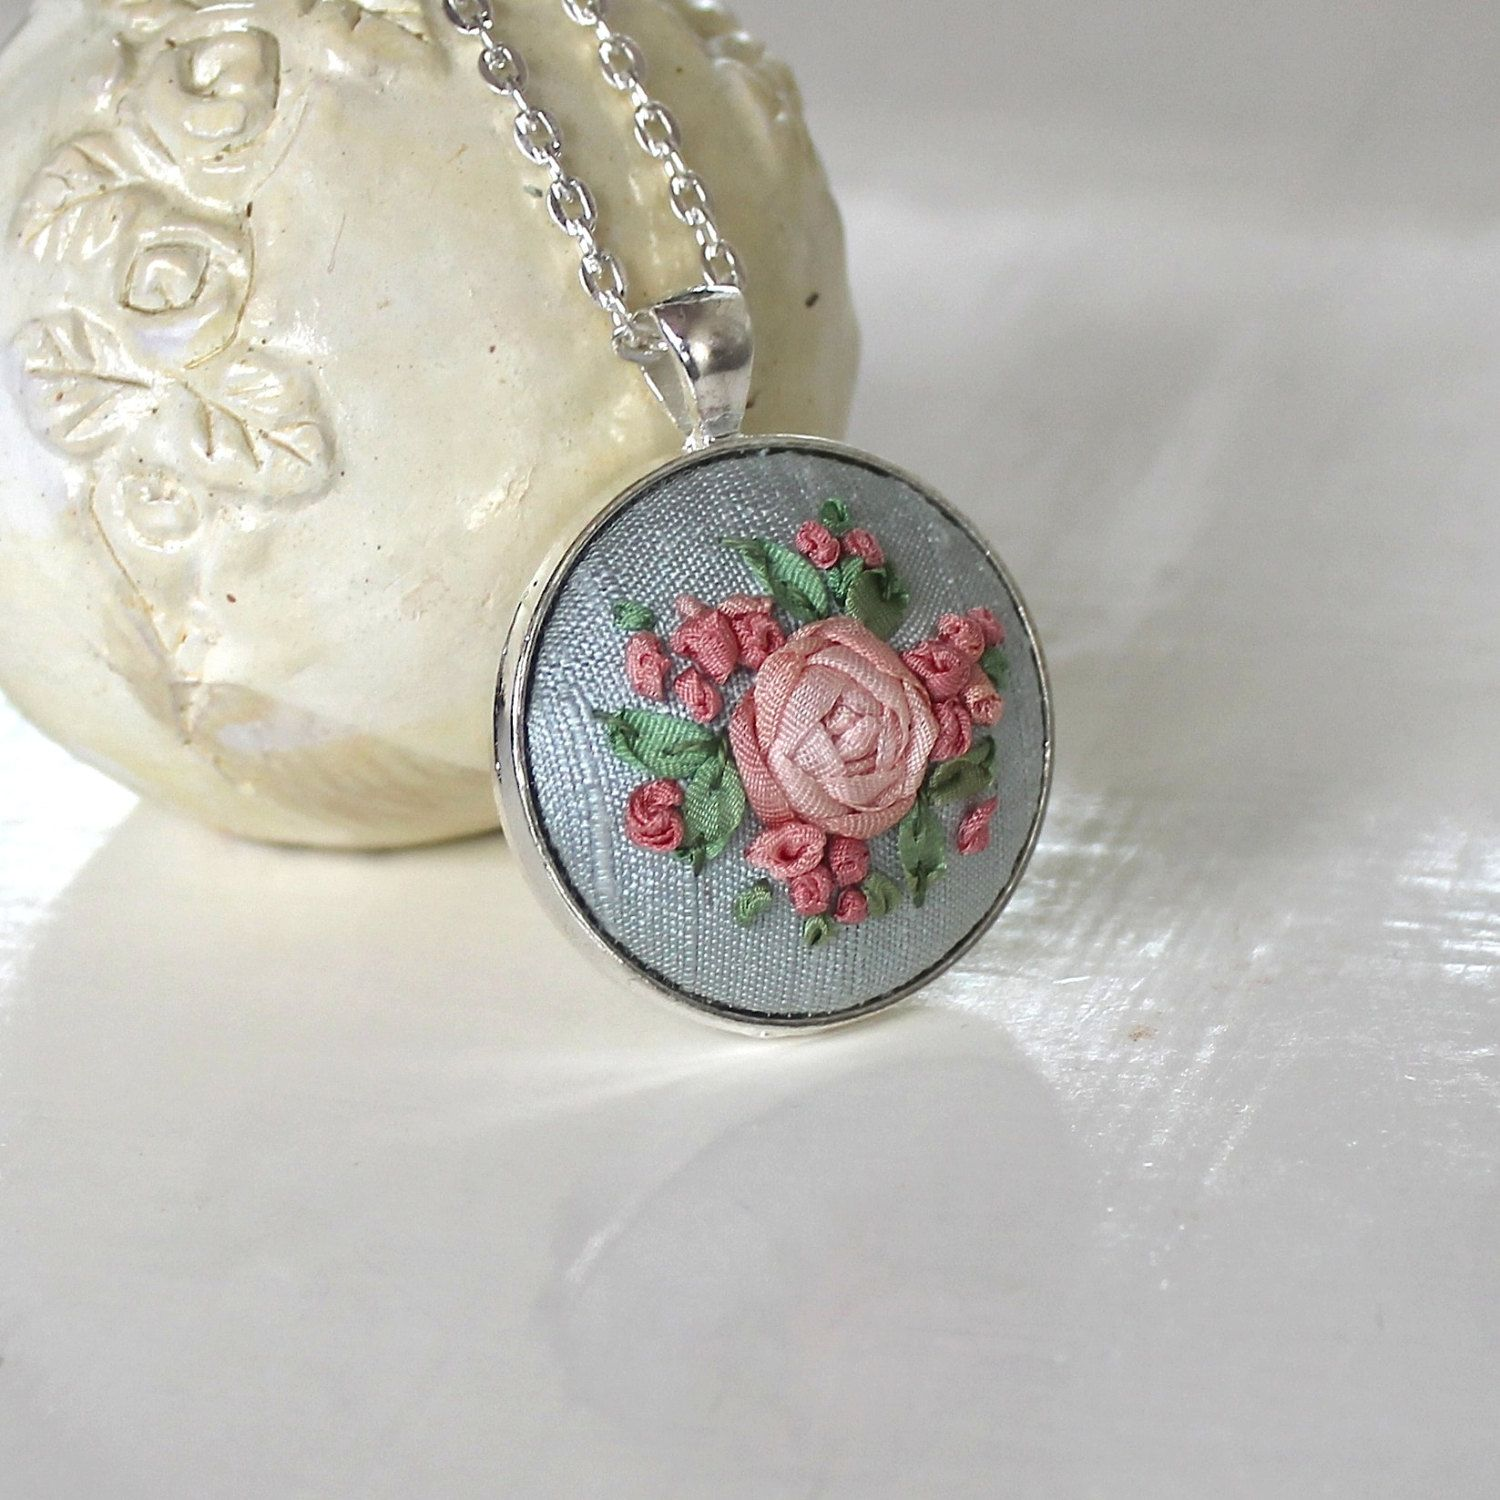 Silk Ribbon Embroidery Rose Pendant Necklace $3200, Via Etsy